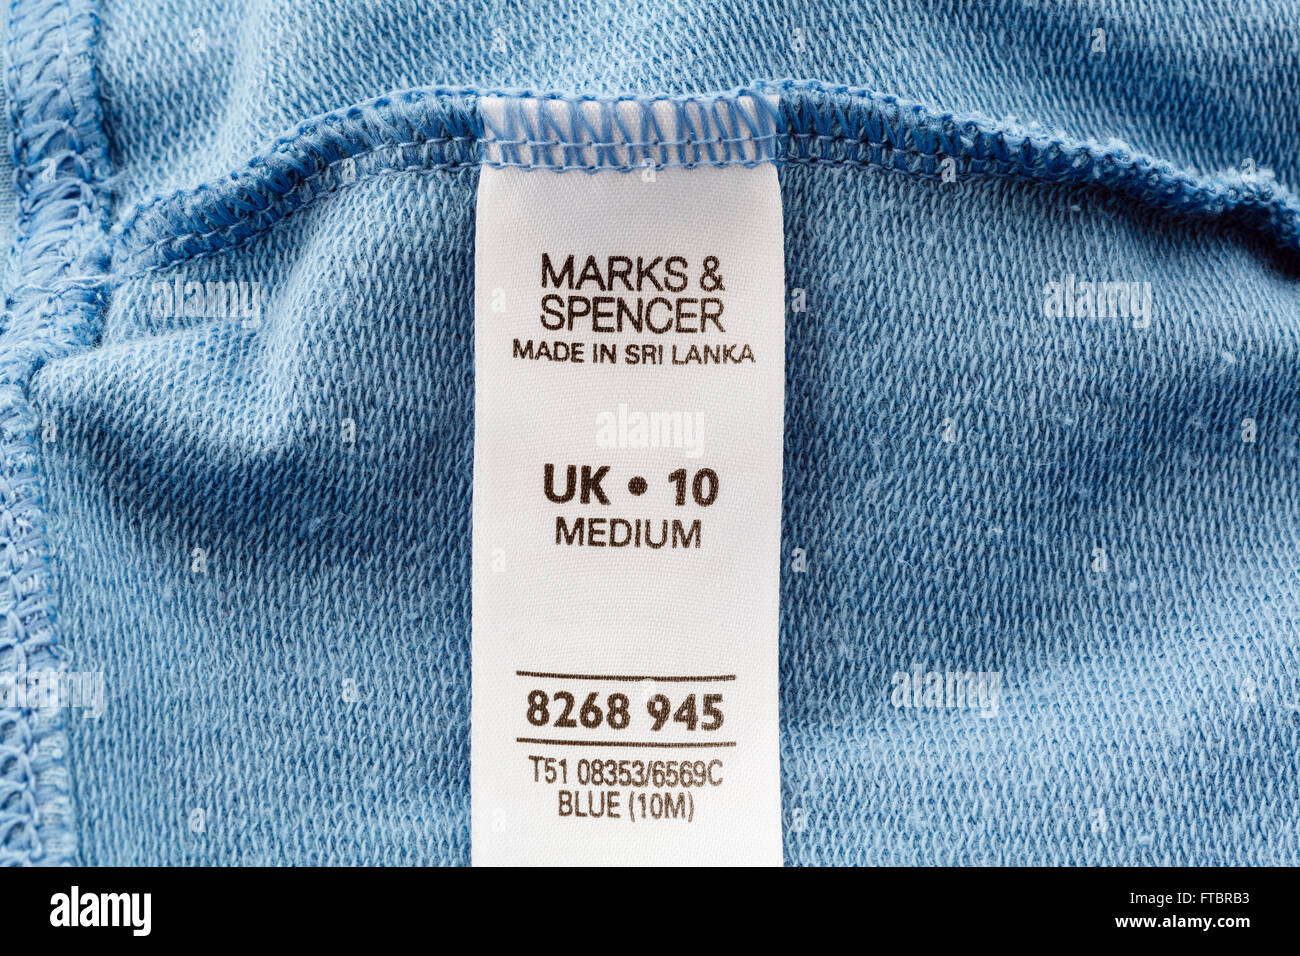 marks and spencer clothing label sewn inside a garment Clothing Company Logos Car Brand Logos and Names